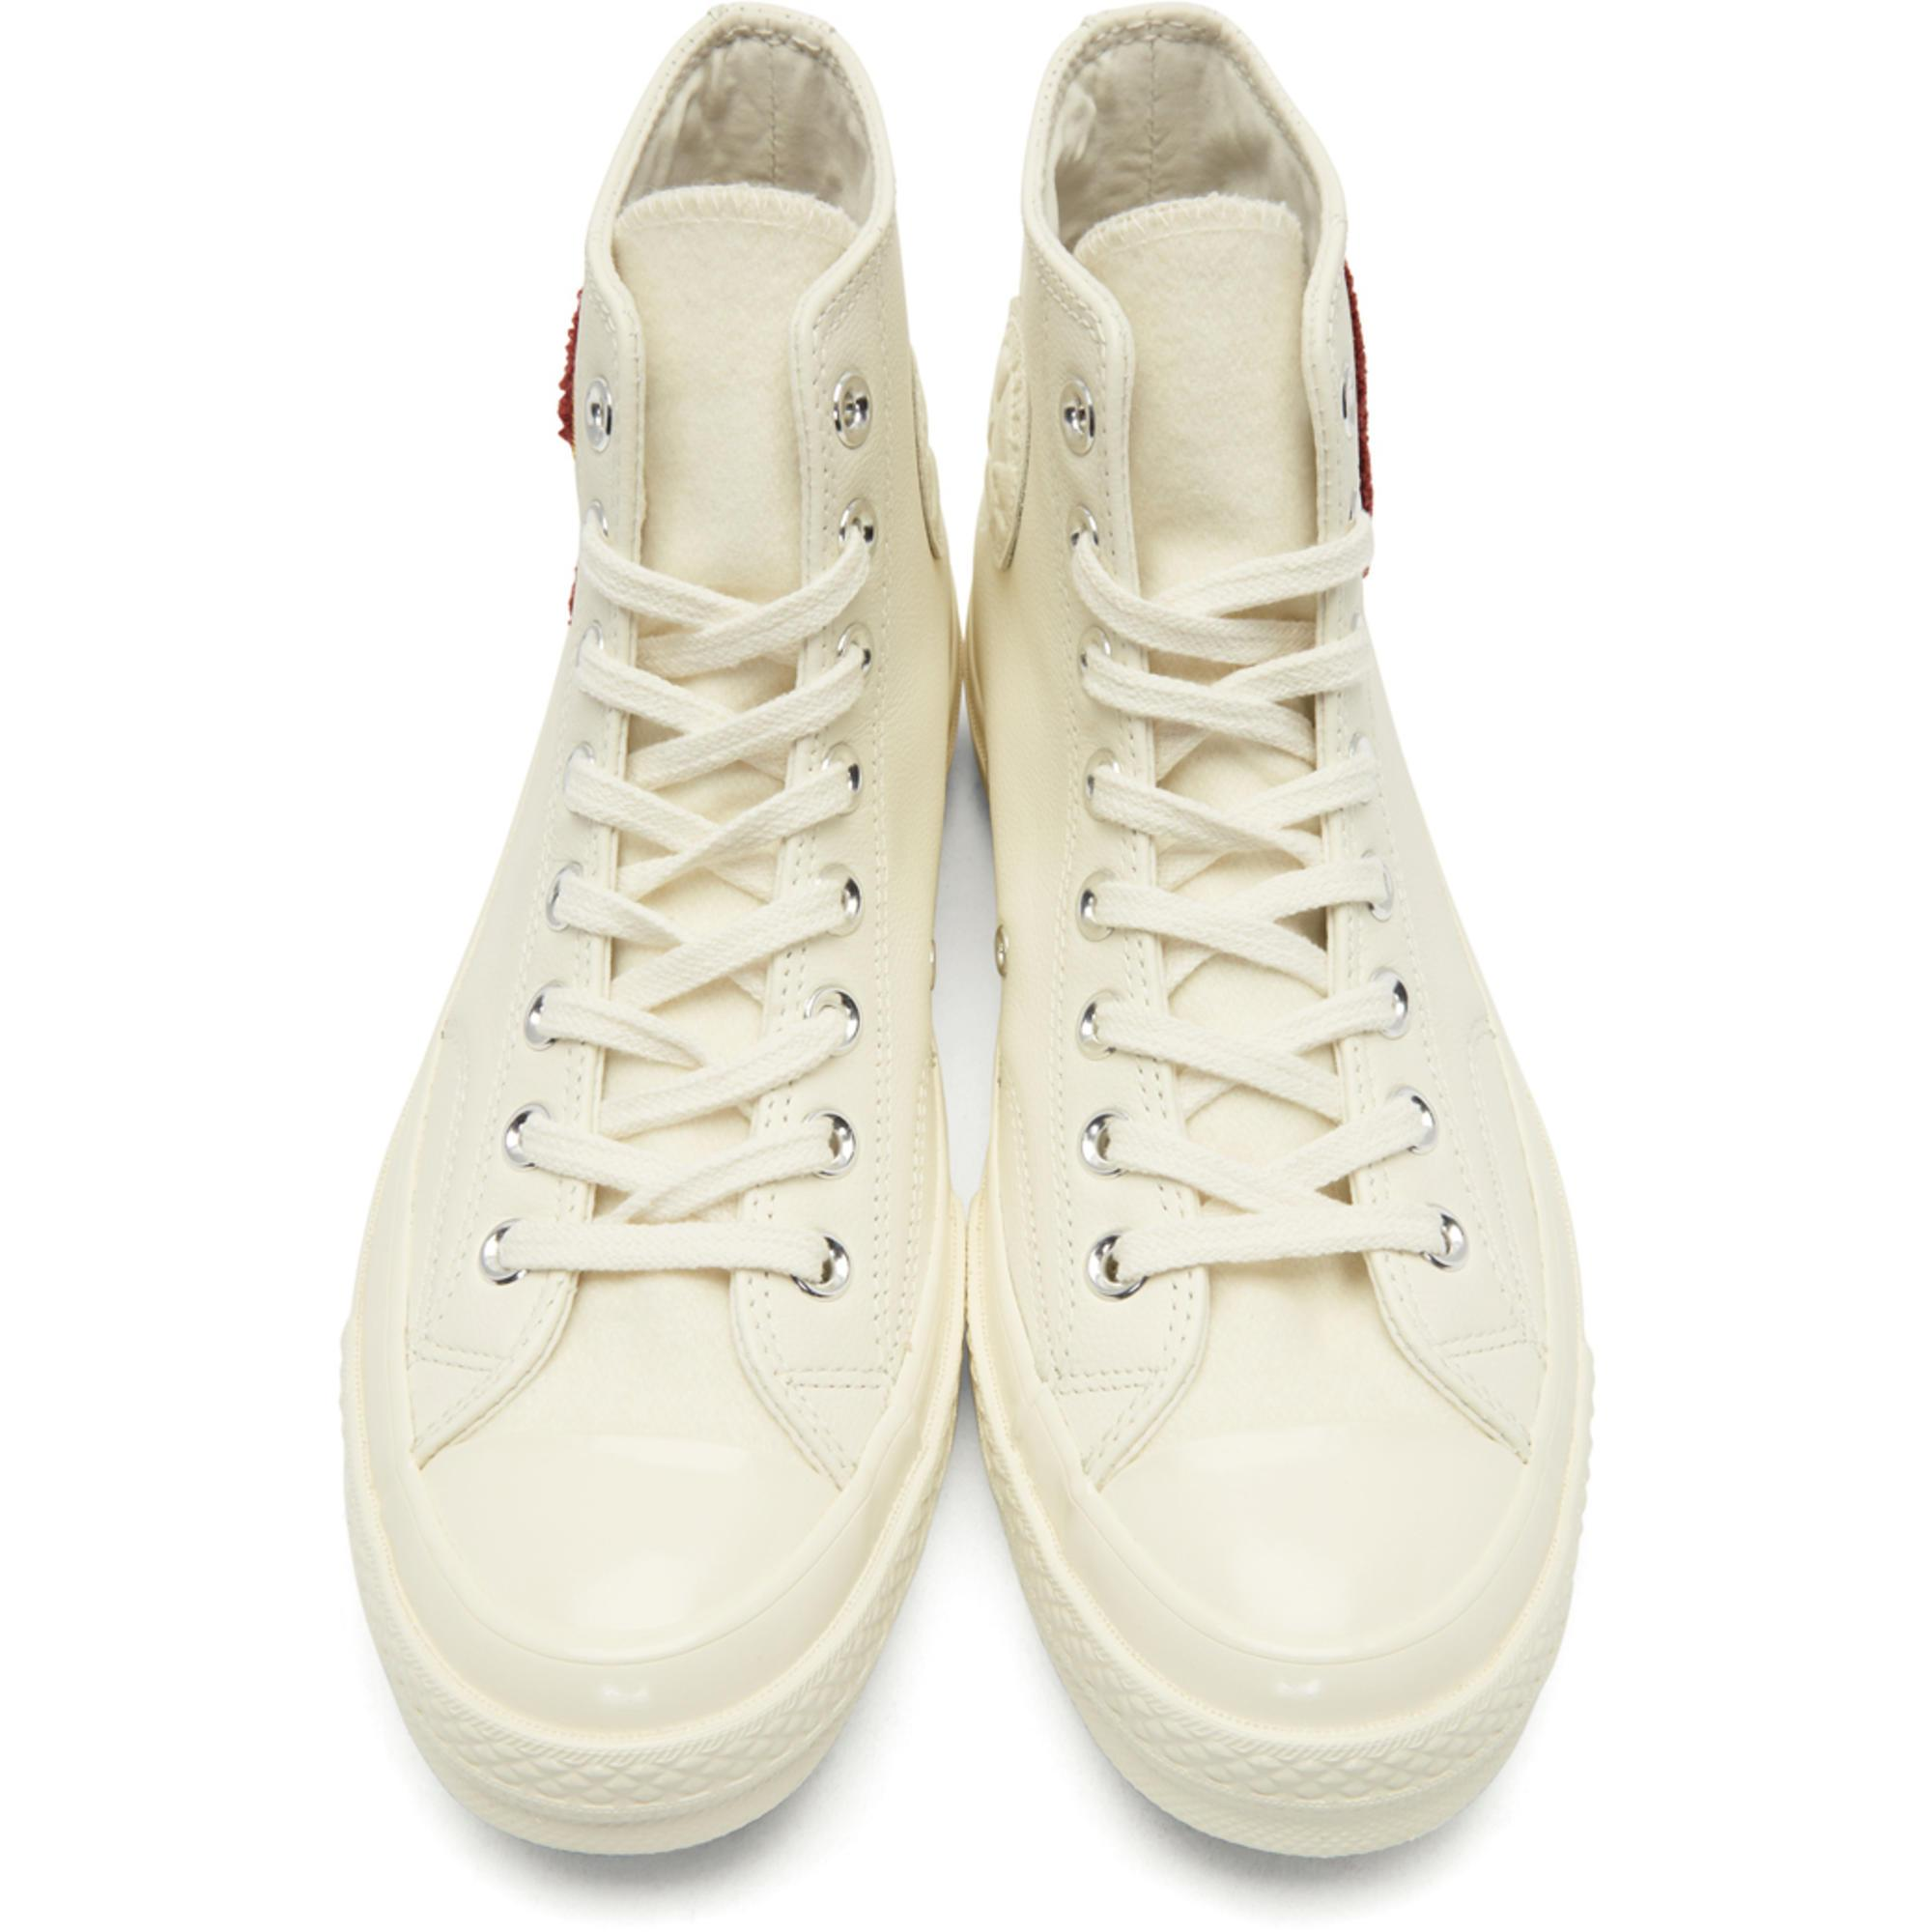 2a50491b068 Baskets montantes en laine blanches Chuck Taylor All Star 70 ...